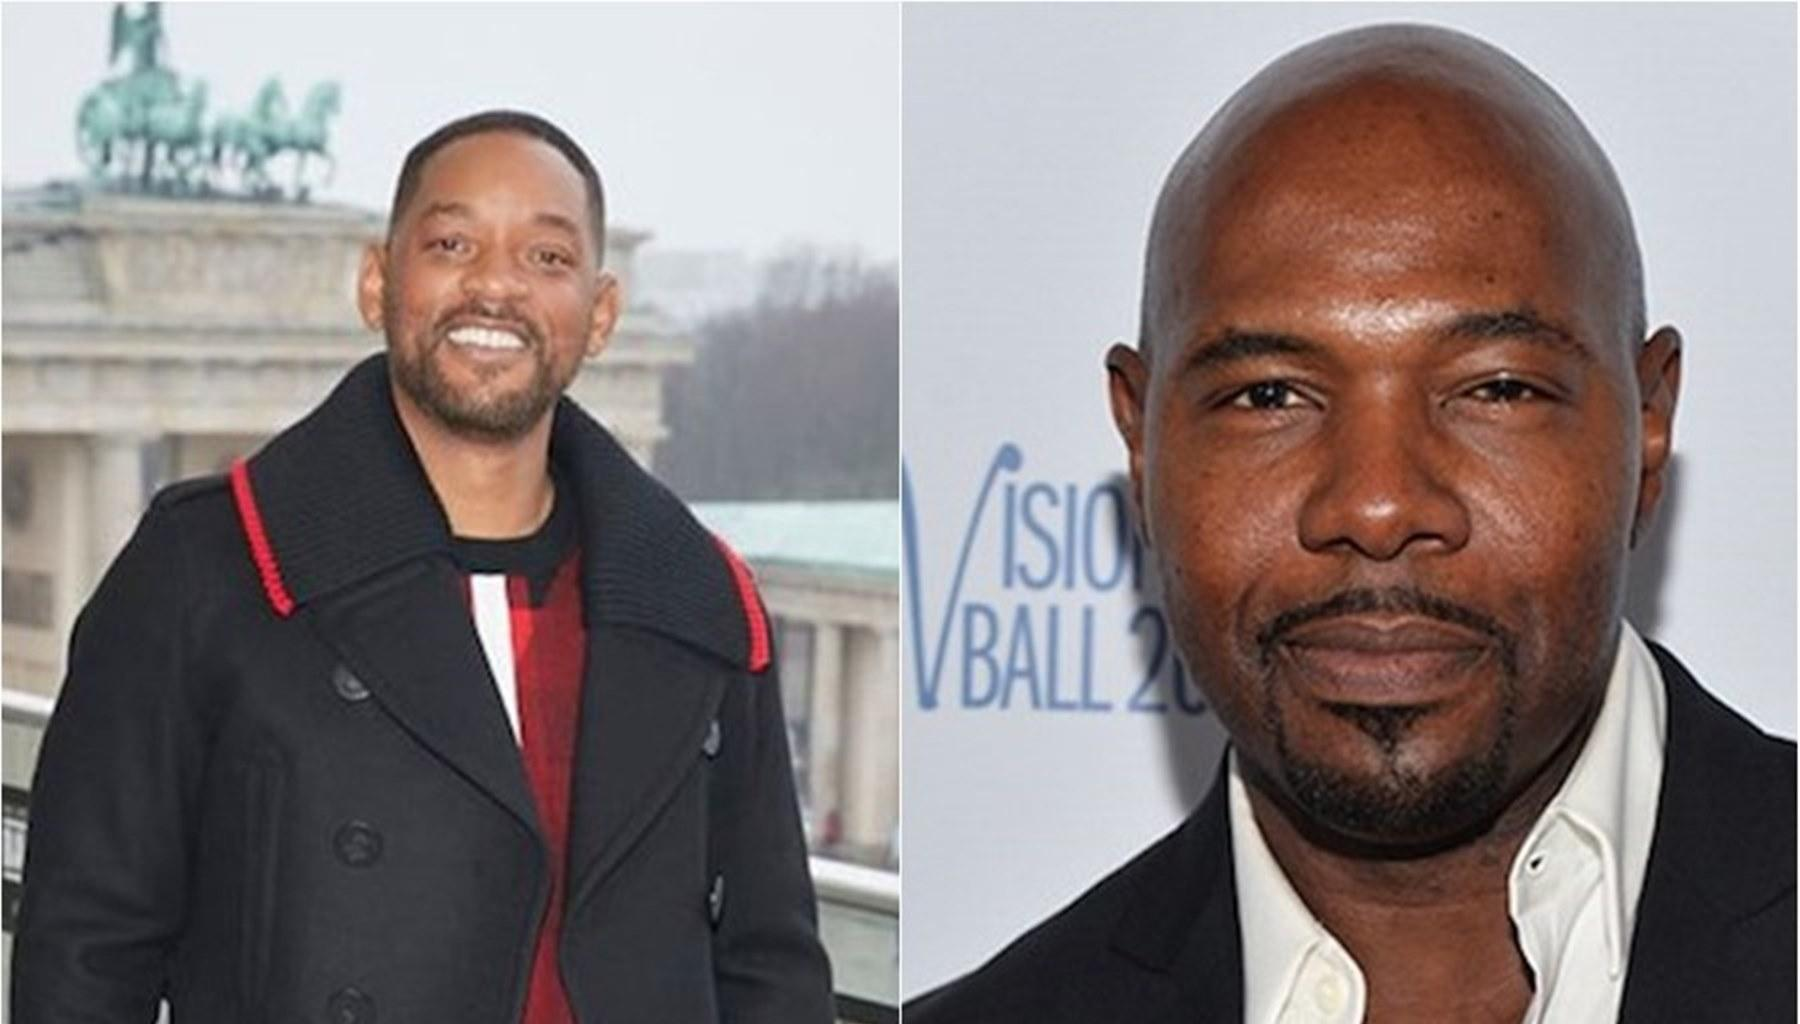 Will Smith Signs To Play Runaway Slave In Antoine Fuqua's 'Emancipation' Movie Inspired By This Photo -- But Fans Want Hollywood To Push Films About Black Kings And Queens Before Slavery